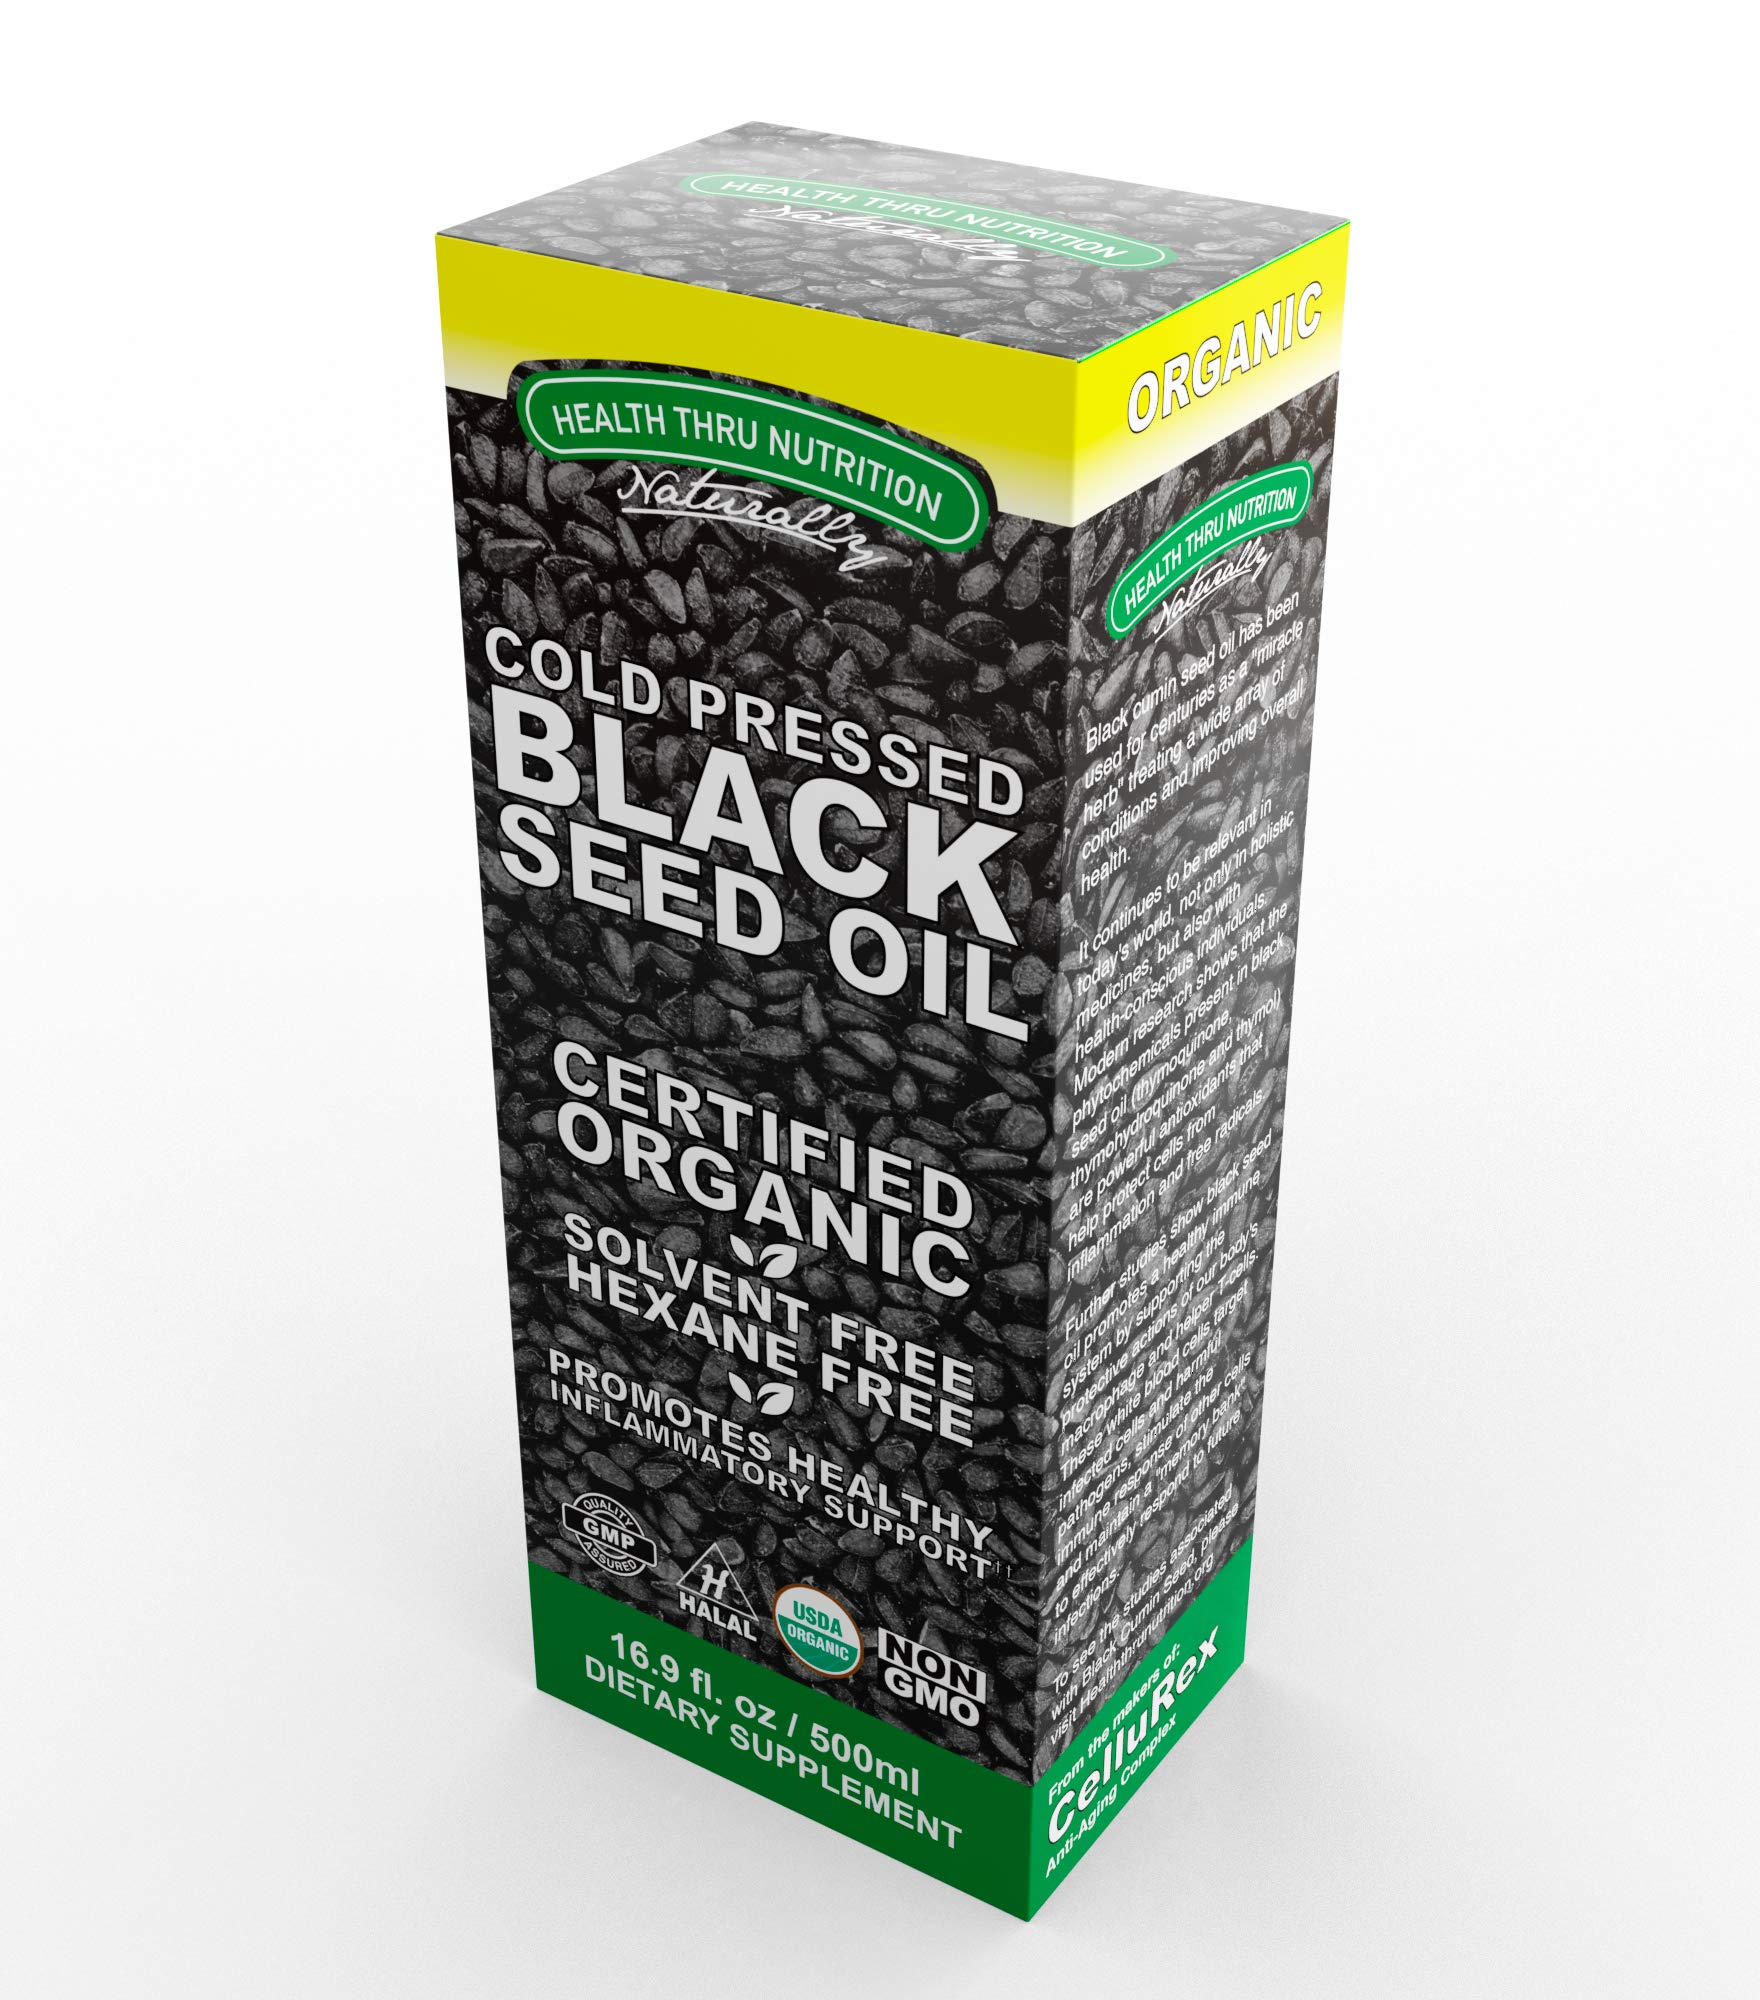 Black Cumin Seed Oil 16.9 oz (500ml) Bottle - 100% Pure Cold-Pressed - Soy-Free & Non-GMO